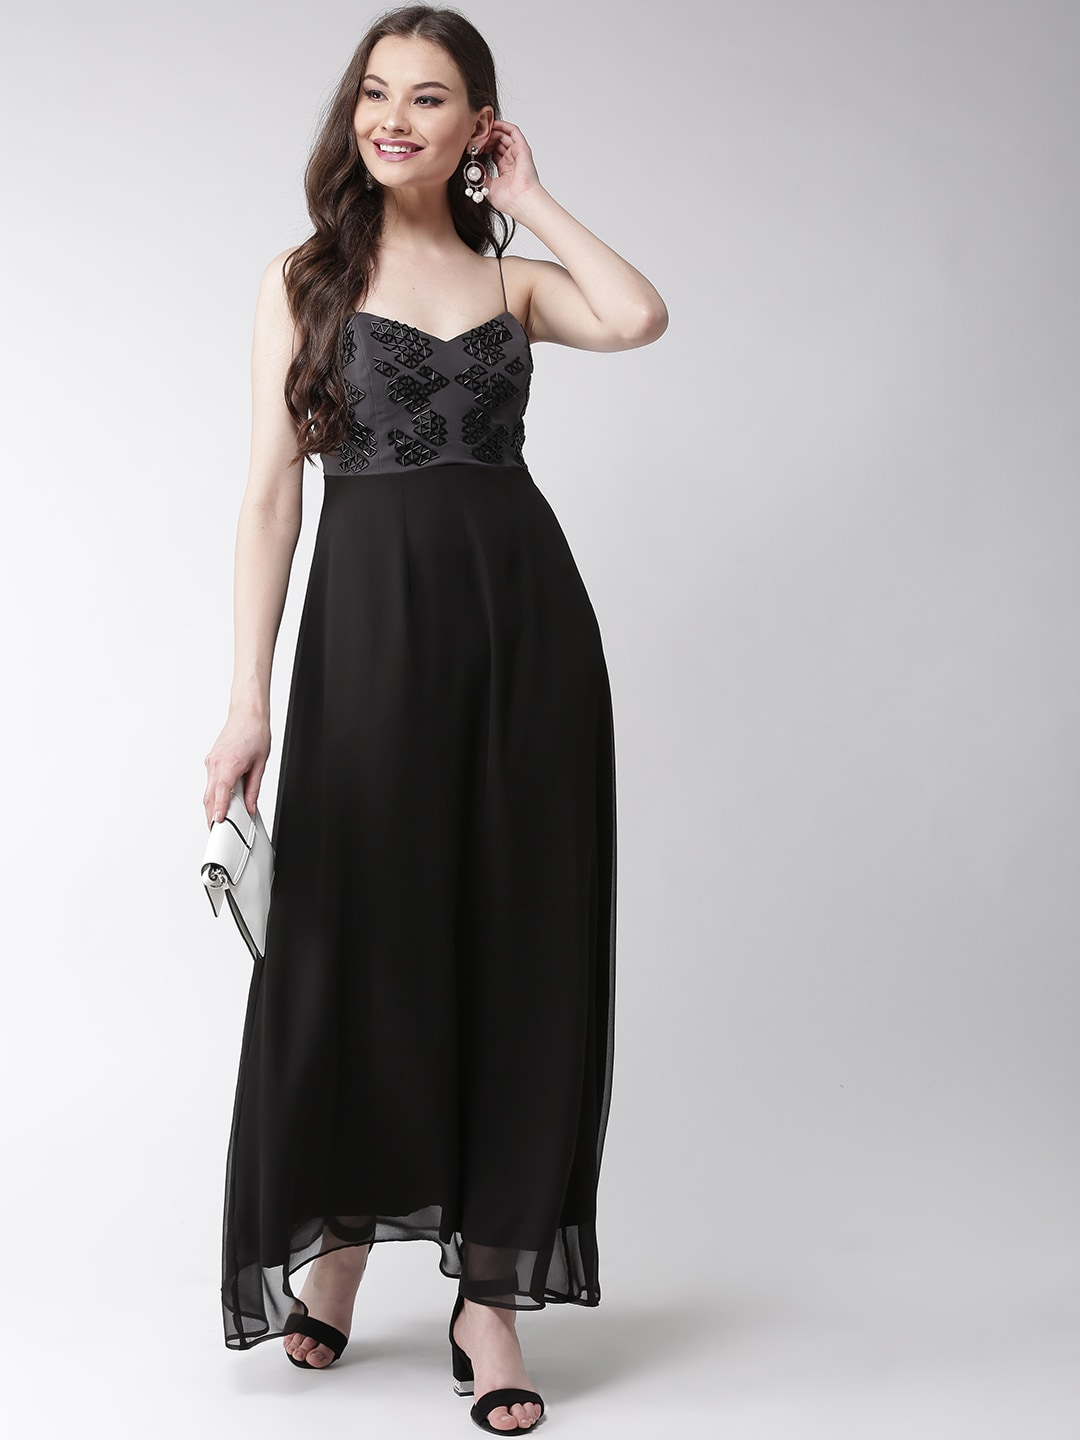 Gowns - Shop for Gown Online at Best Price  be23336c75ee